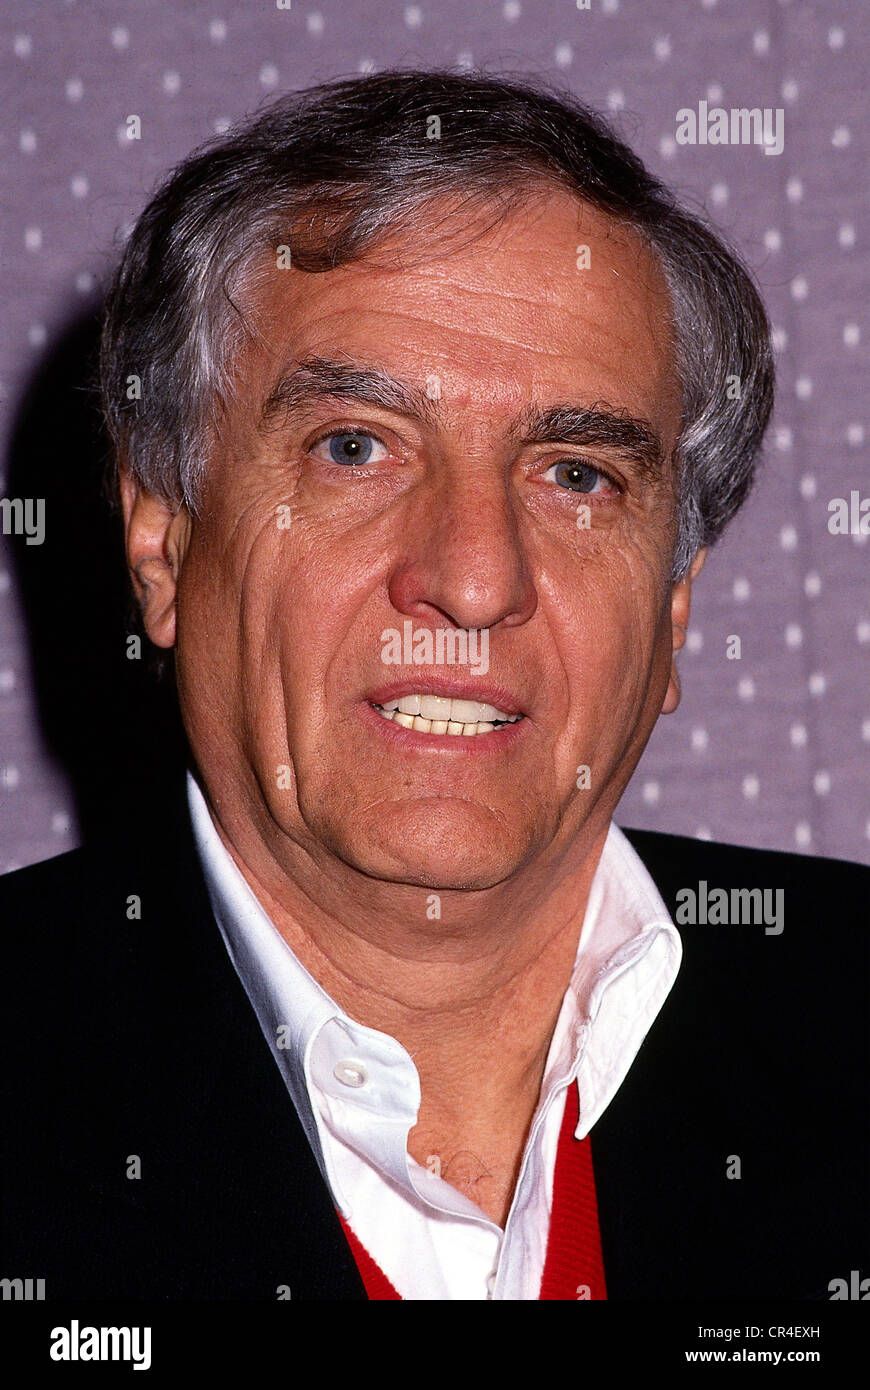 Marshall, Garry Kent, 13.11.1934 - 19.7.2016, US director, portrait, 1991, Additional-Rights-Clearances-NA - Stock Image